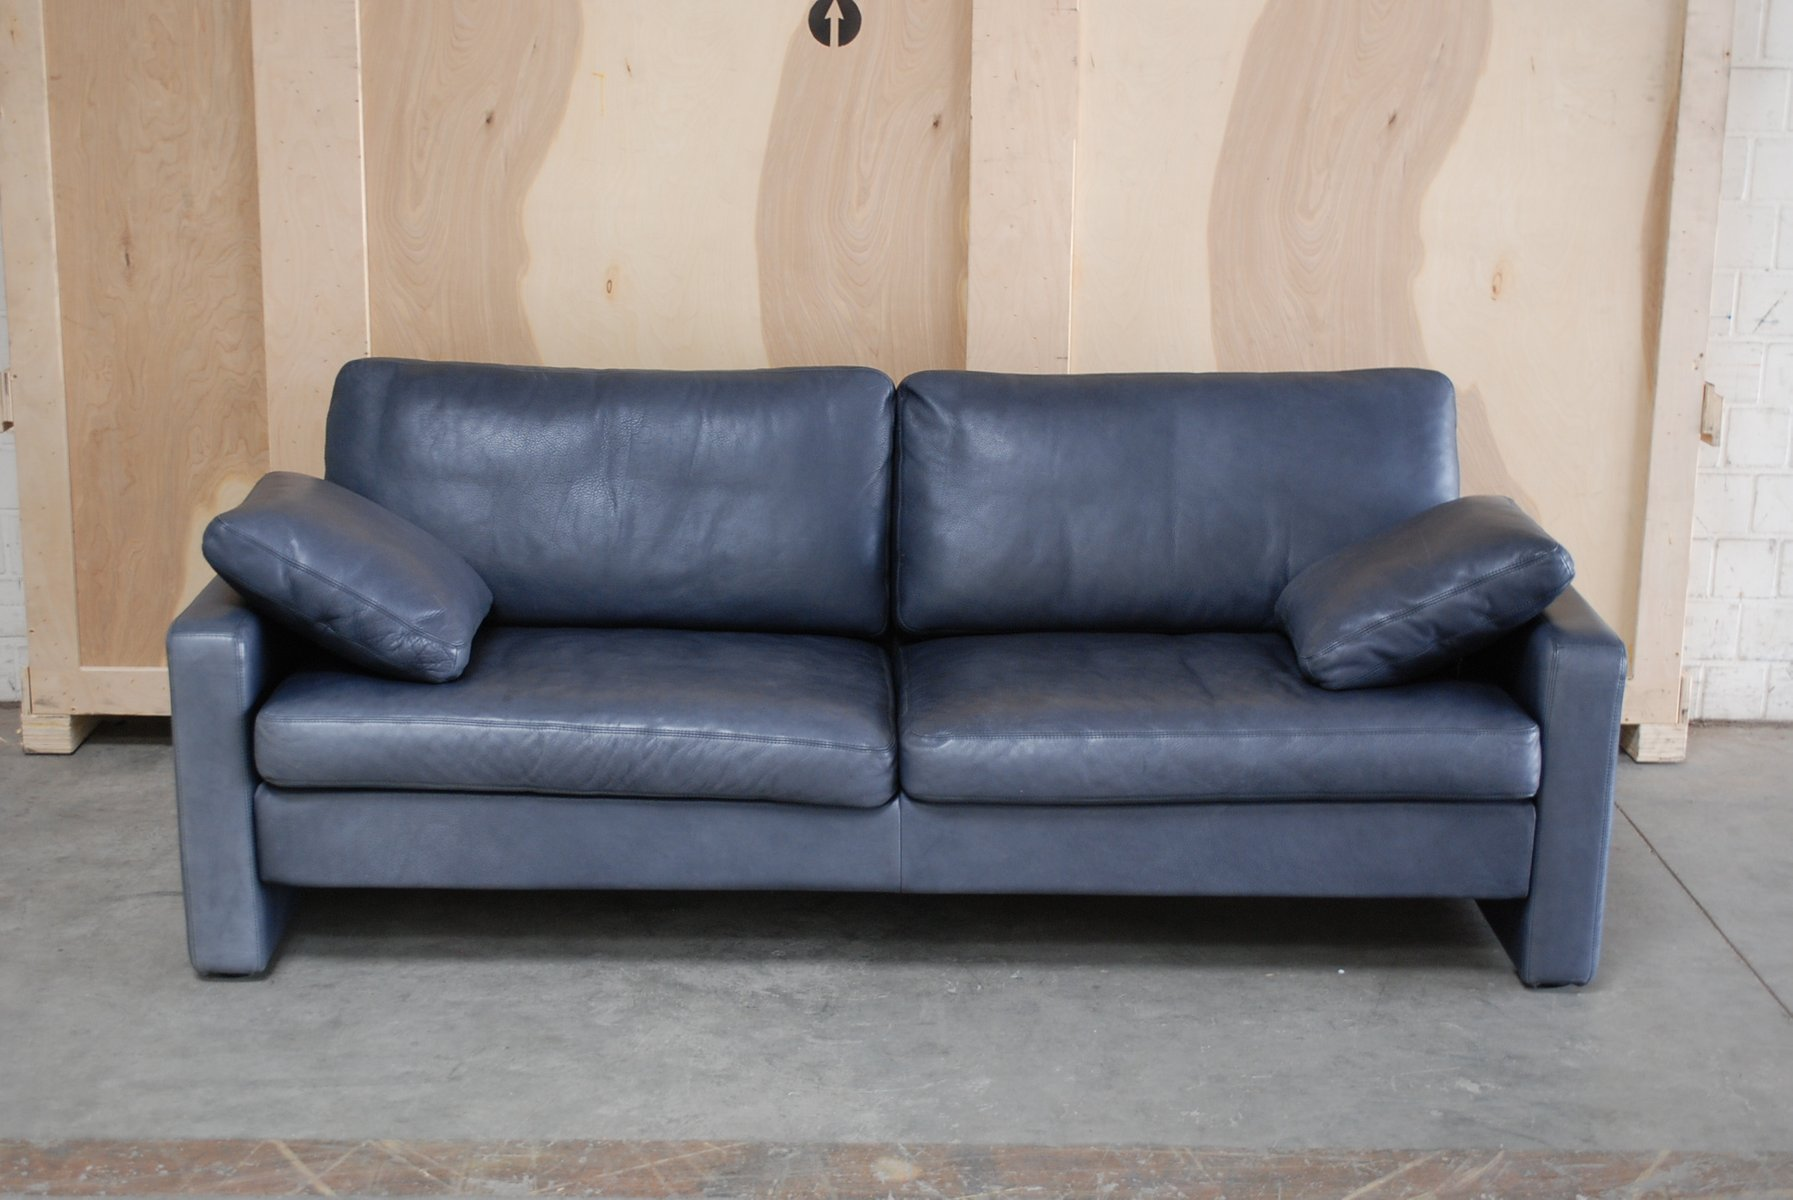 Vintage Conseta Blue Leather Sofa From Cor For Sale At Pamono